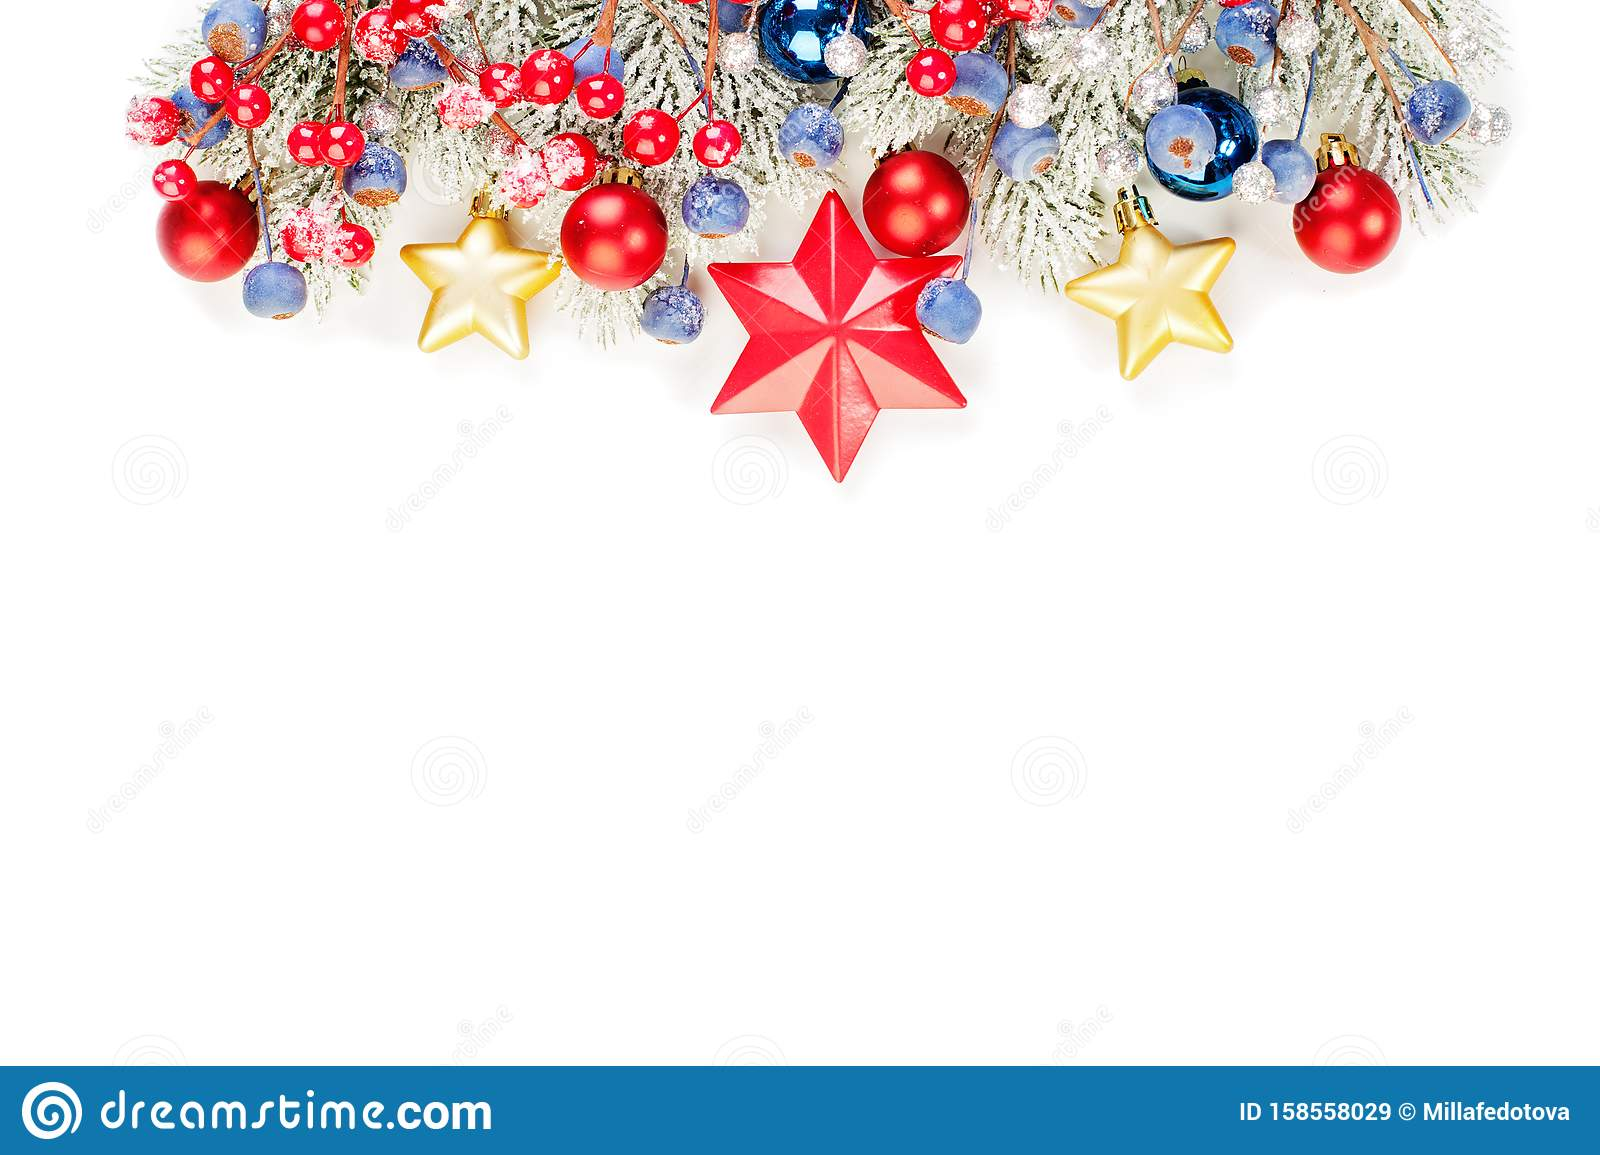 Shiny glitter Christmas border isolated on white background. Colorful banner with green Xmas tree twig, holly berries